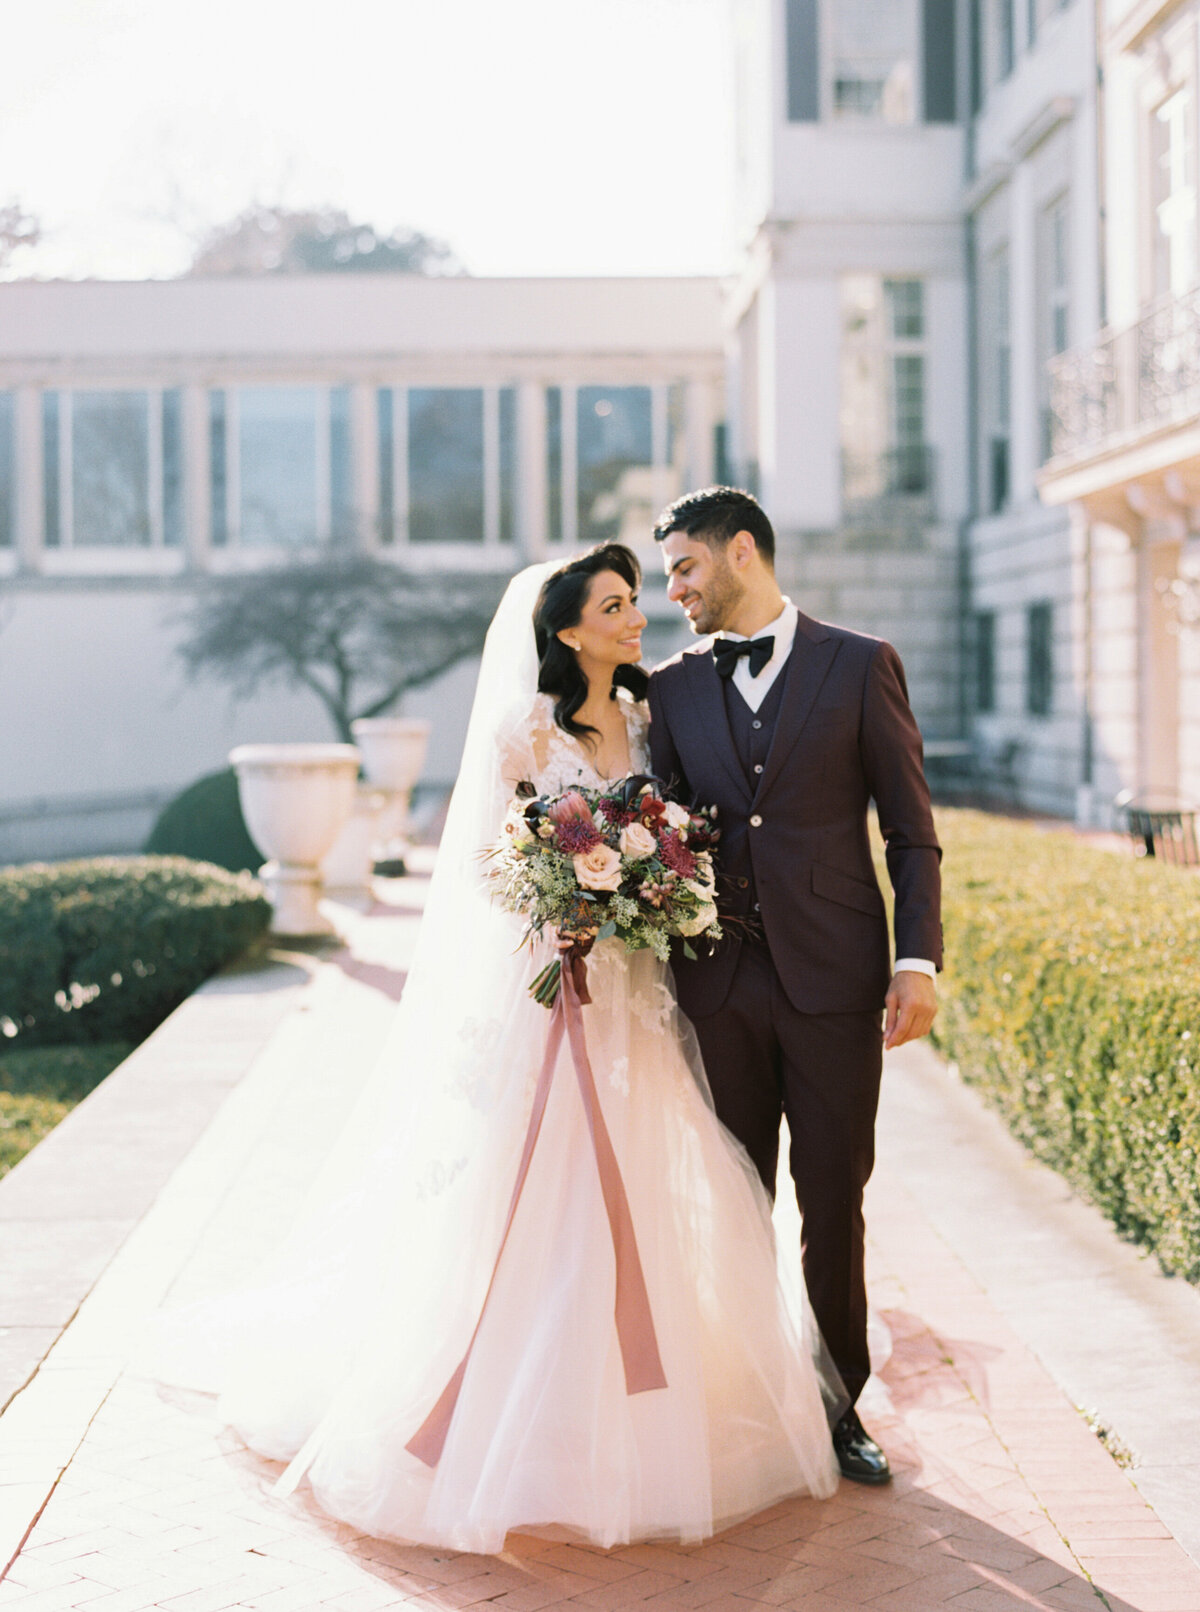 Kaylea Moreno_wedding gallery - Rami-Cassandra-Wedding-krmorenophoto-163